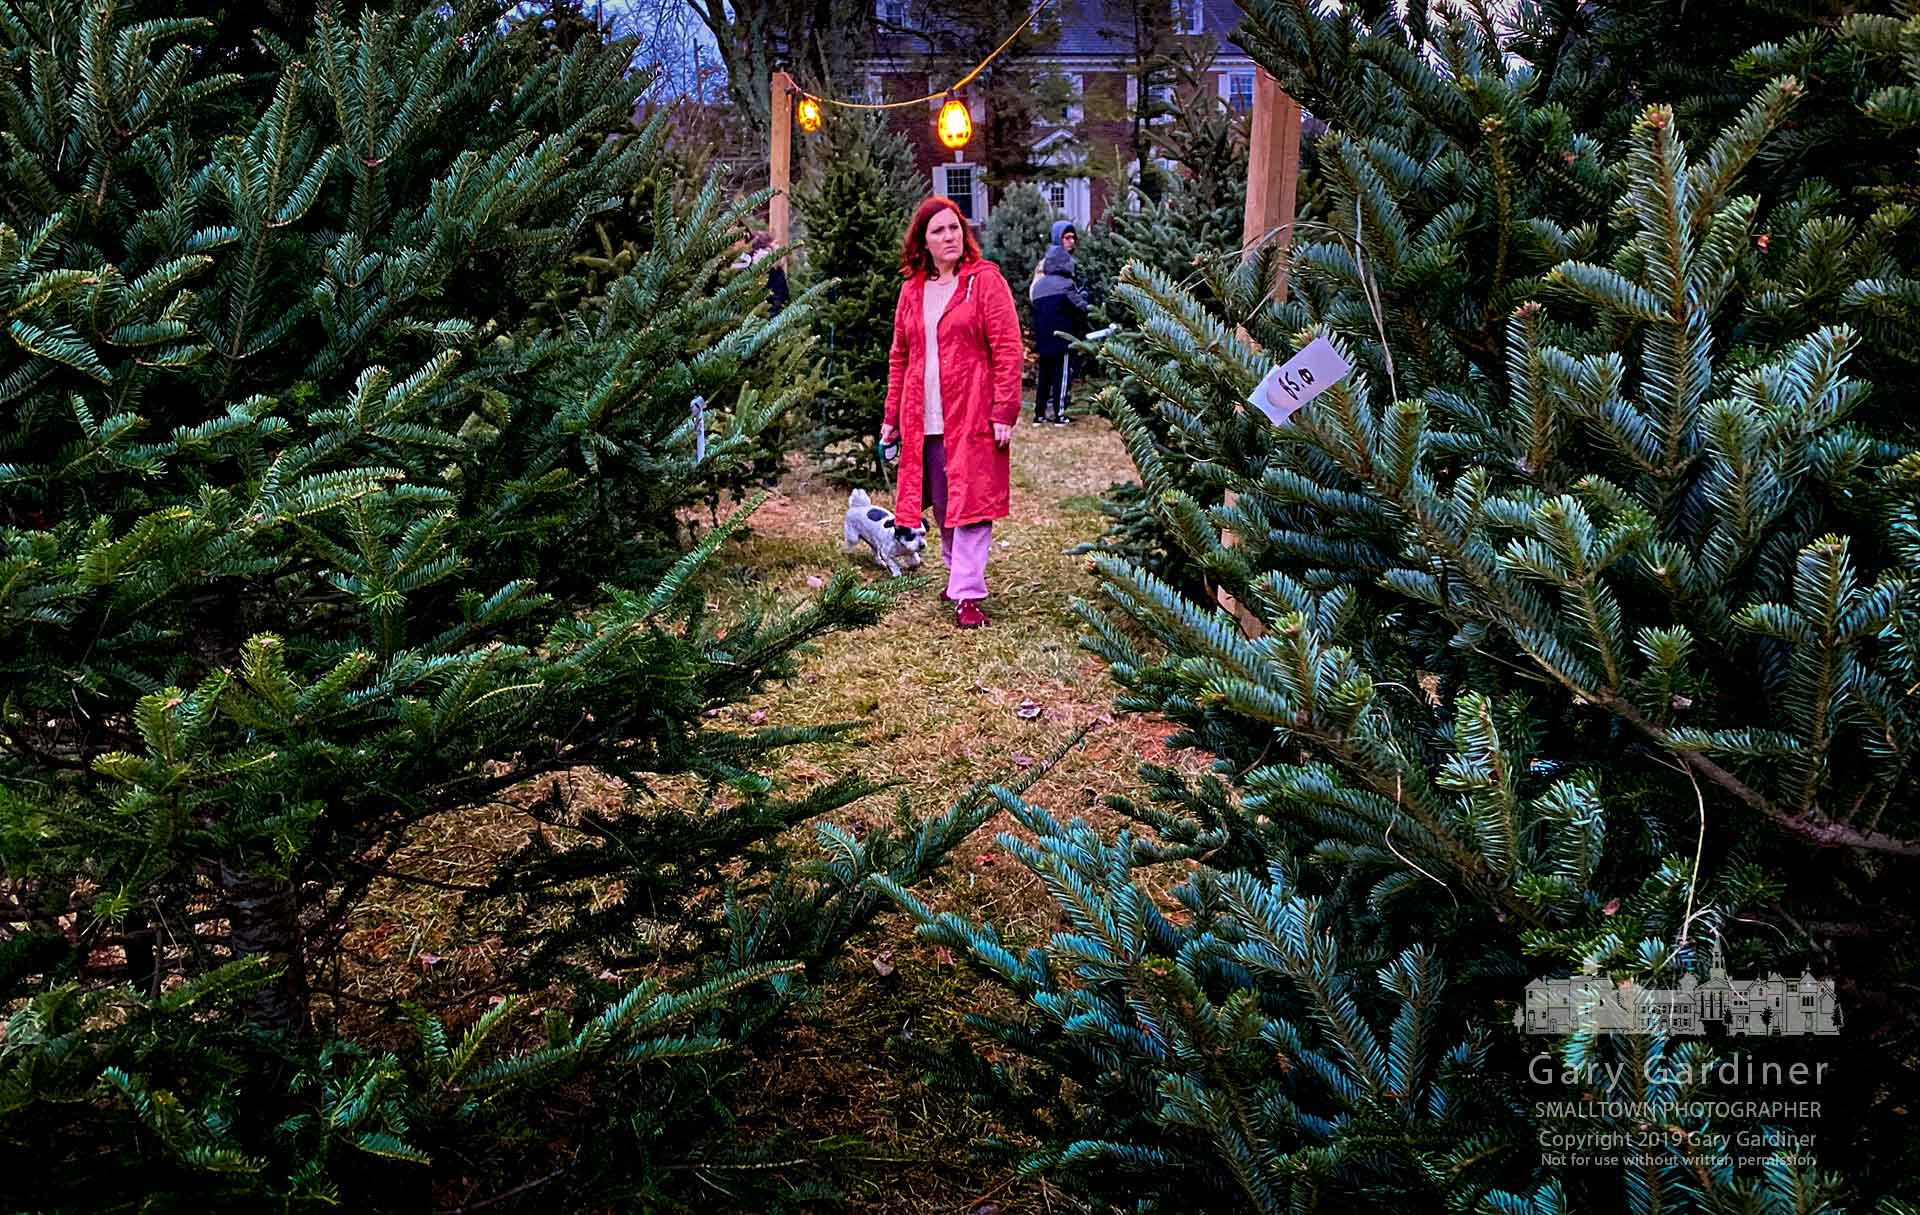 A woman walks through the selection of Christmas trees in the Troop 192 sales lot at Central College Church hoping to find the perfect size and shape for her home. My Final Photo for Dec. 1, 2019.